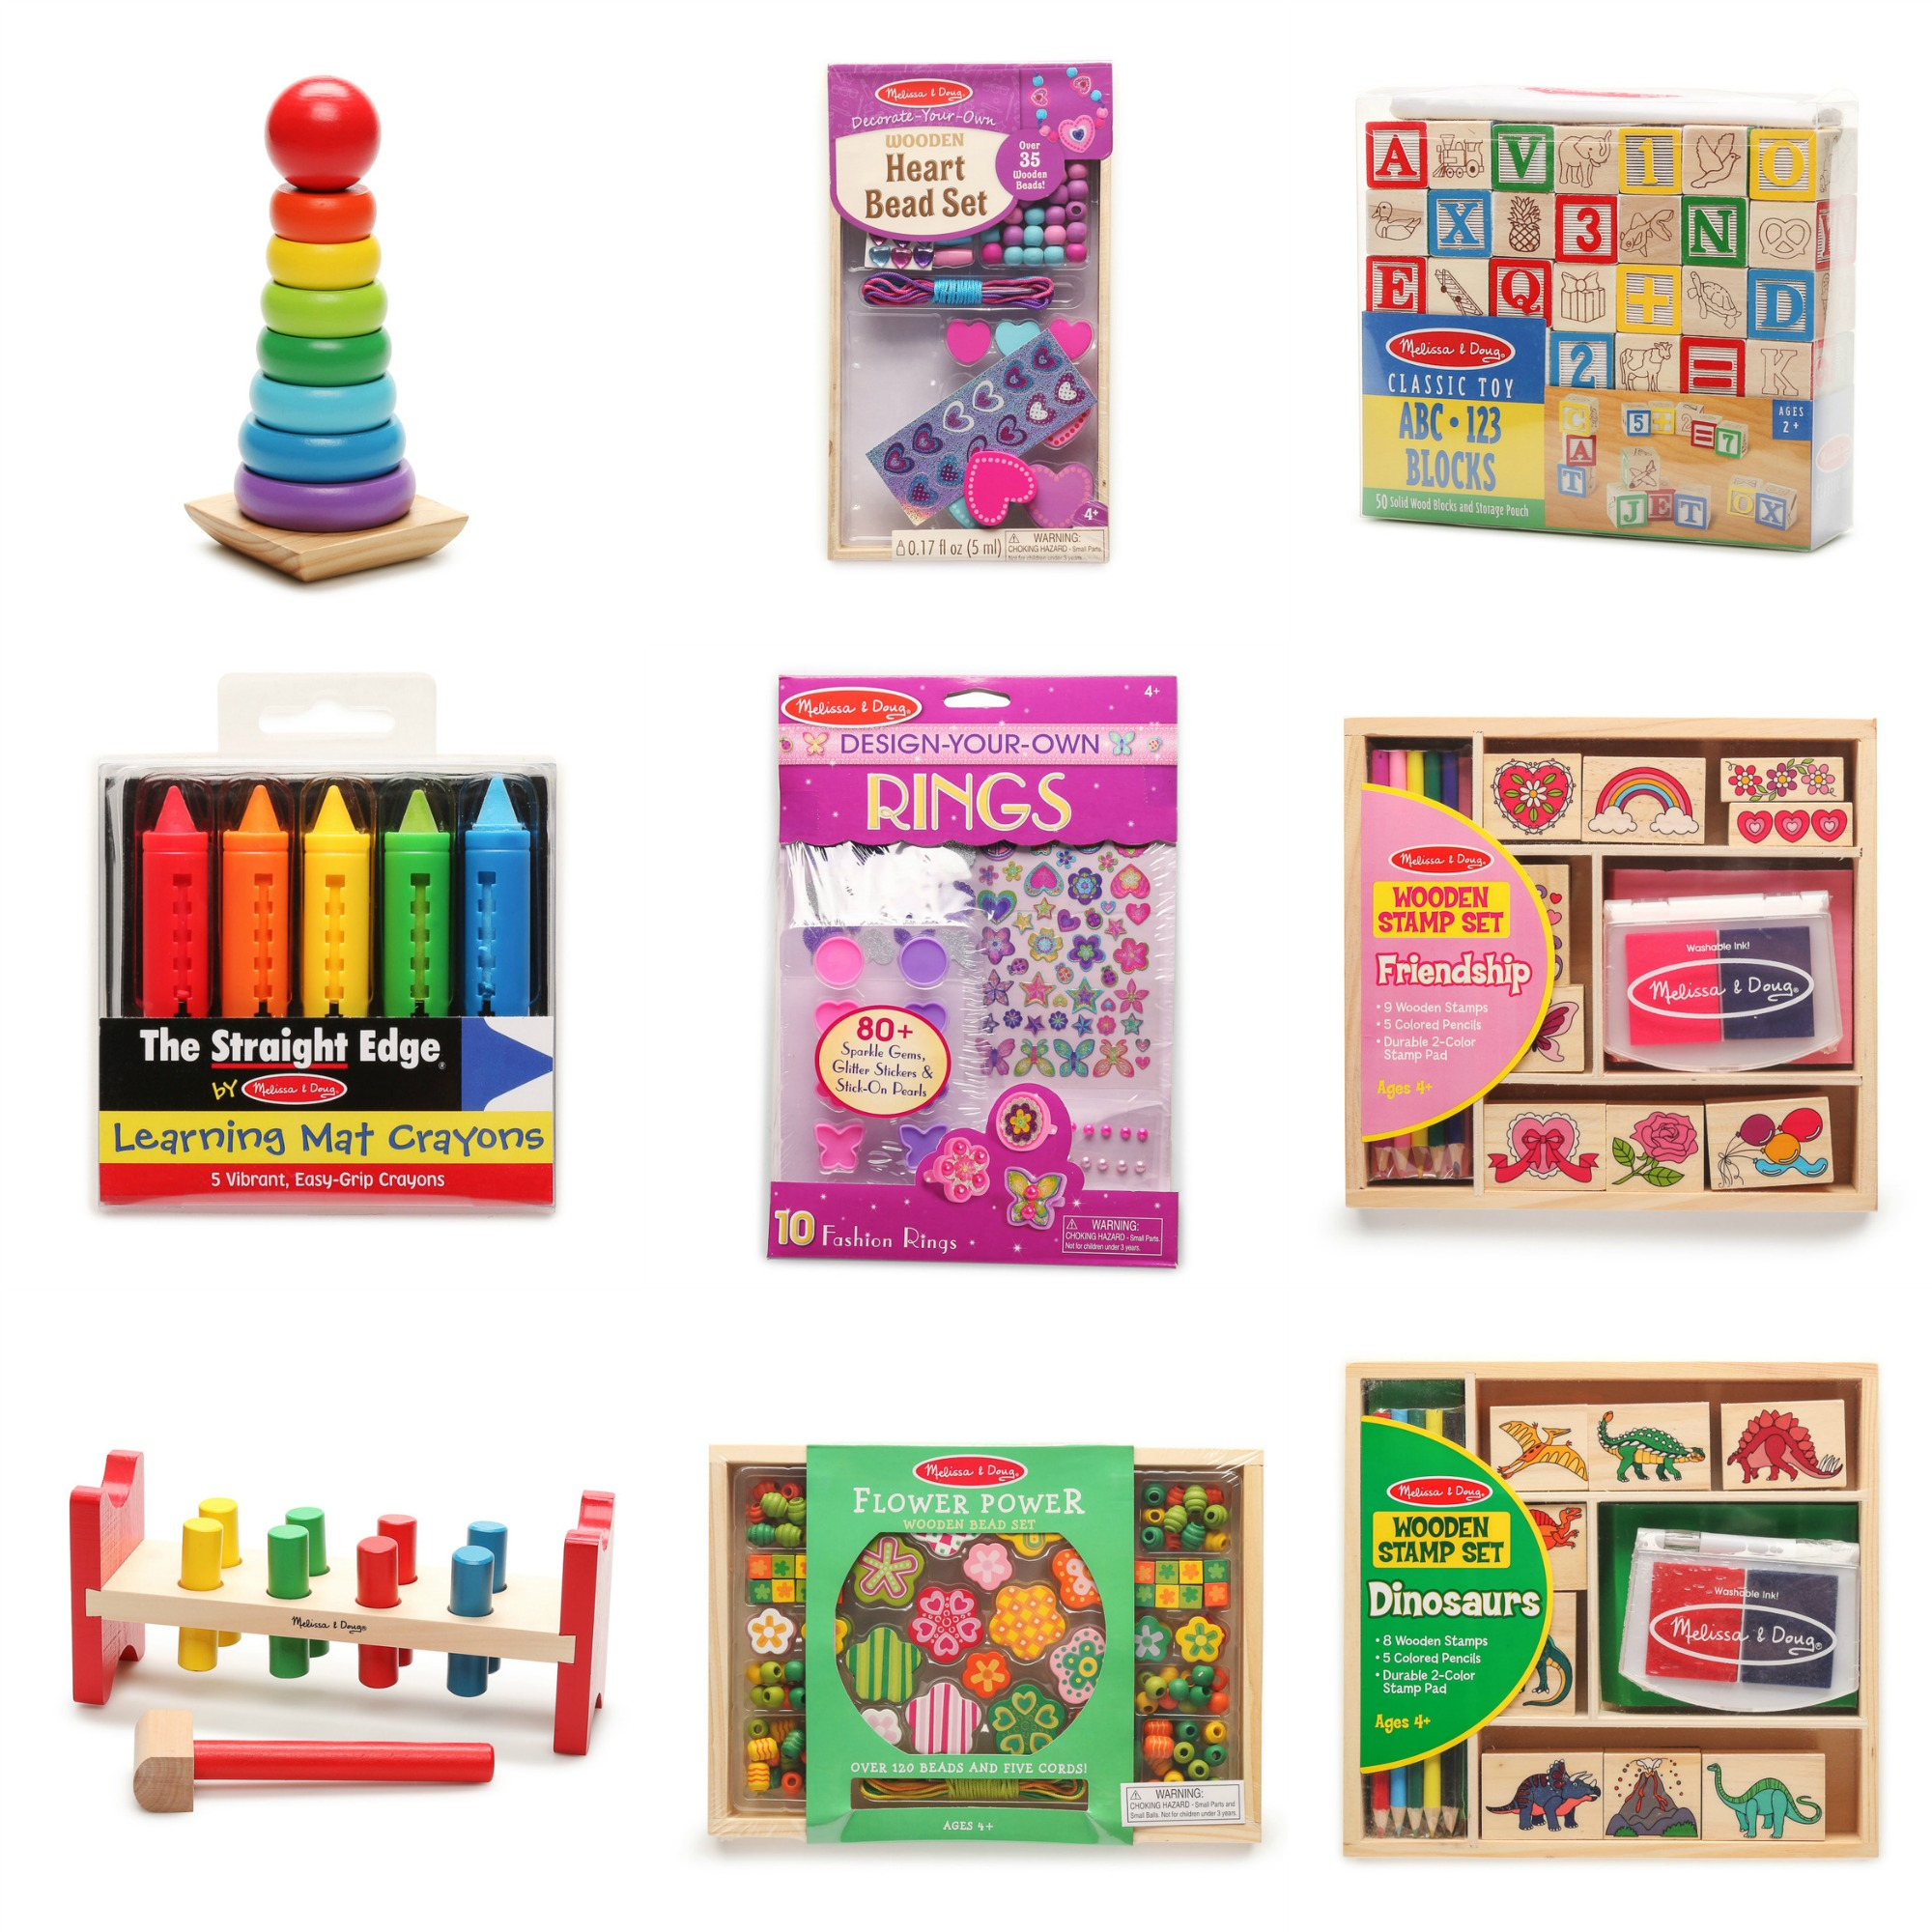 *HOT* Melissa & Doug Toys and Crafts ONLY $1 – $3 + FREE Shipping!